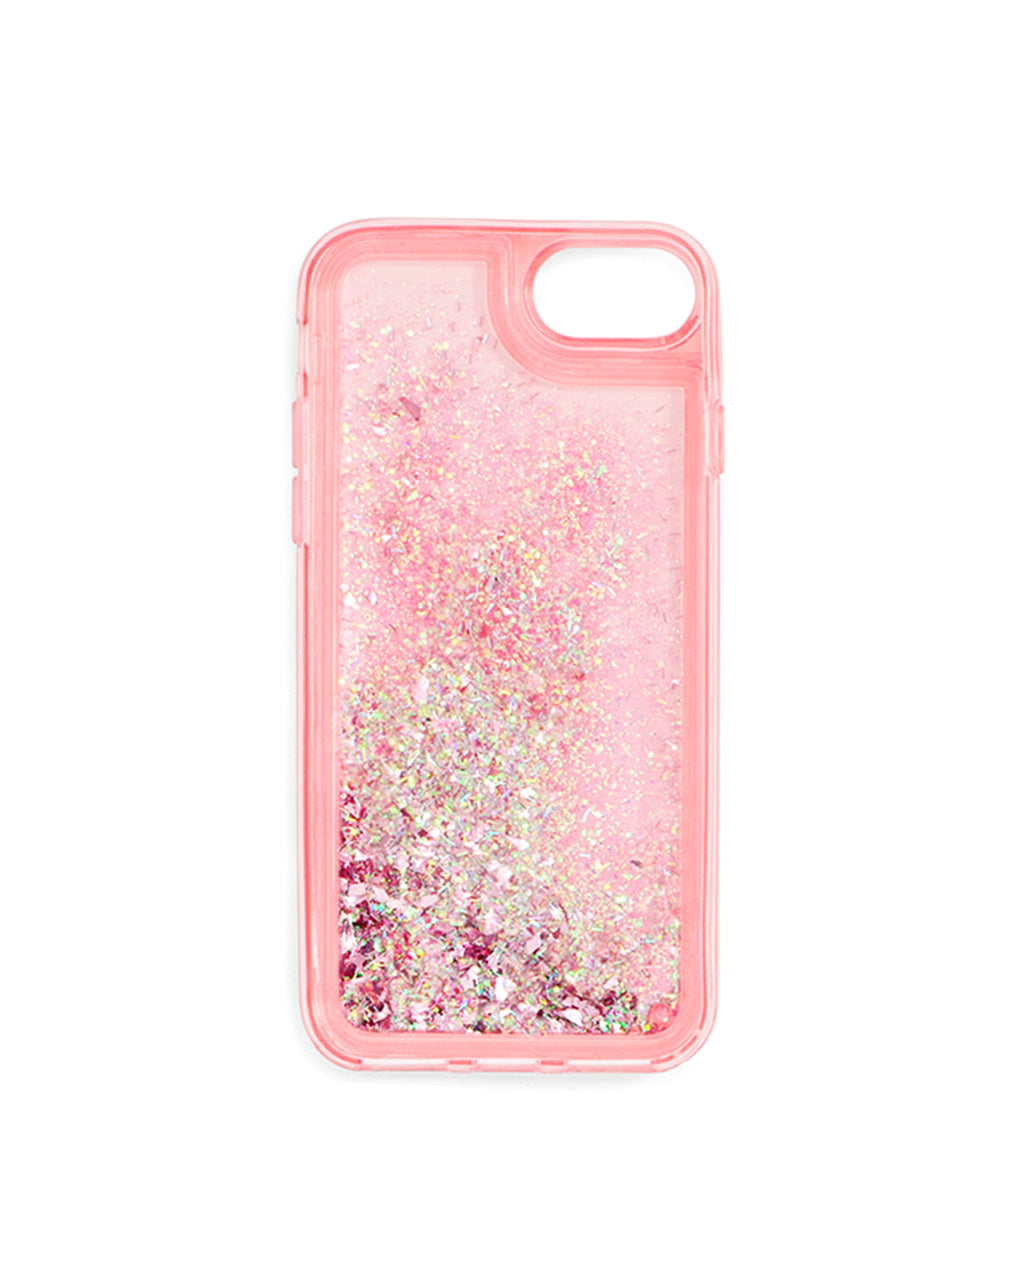 Interior view of pink stardust iPhone case